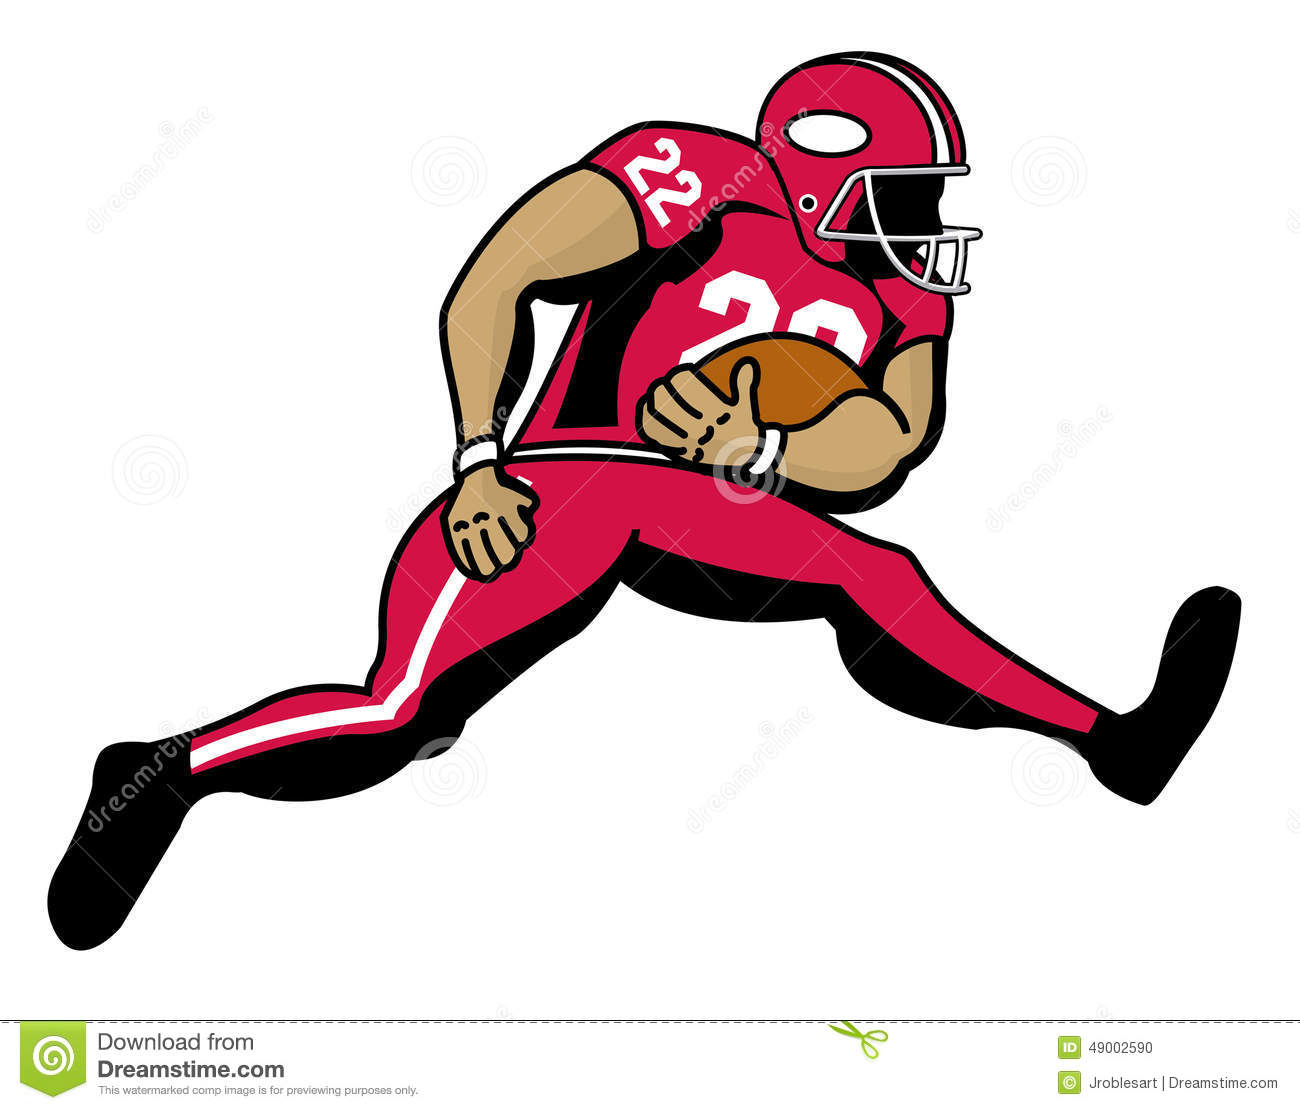 Football Clipart  Browse 7084 Free amp Downloadable Images!